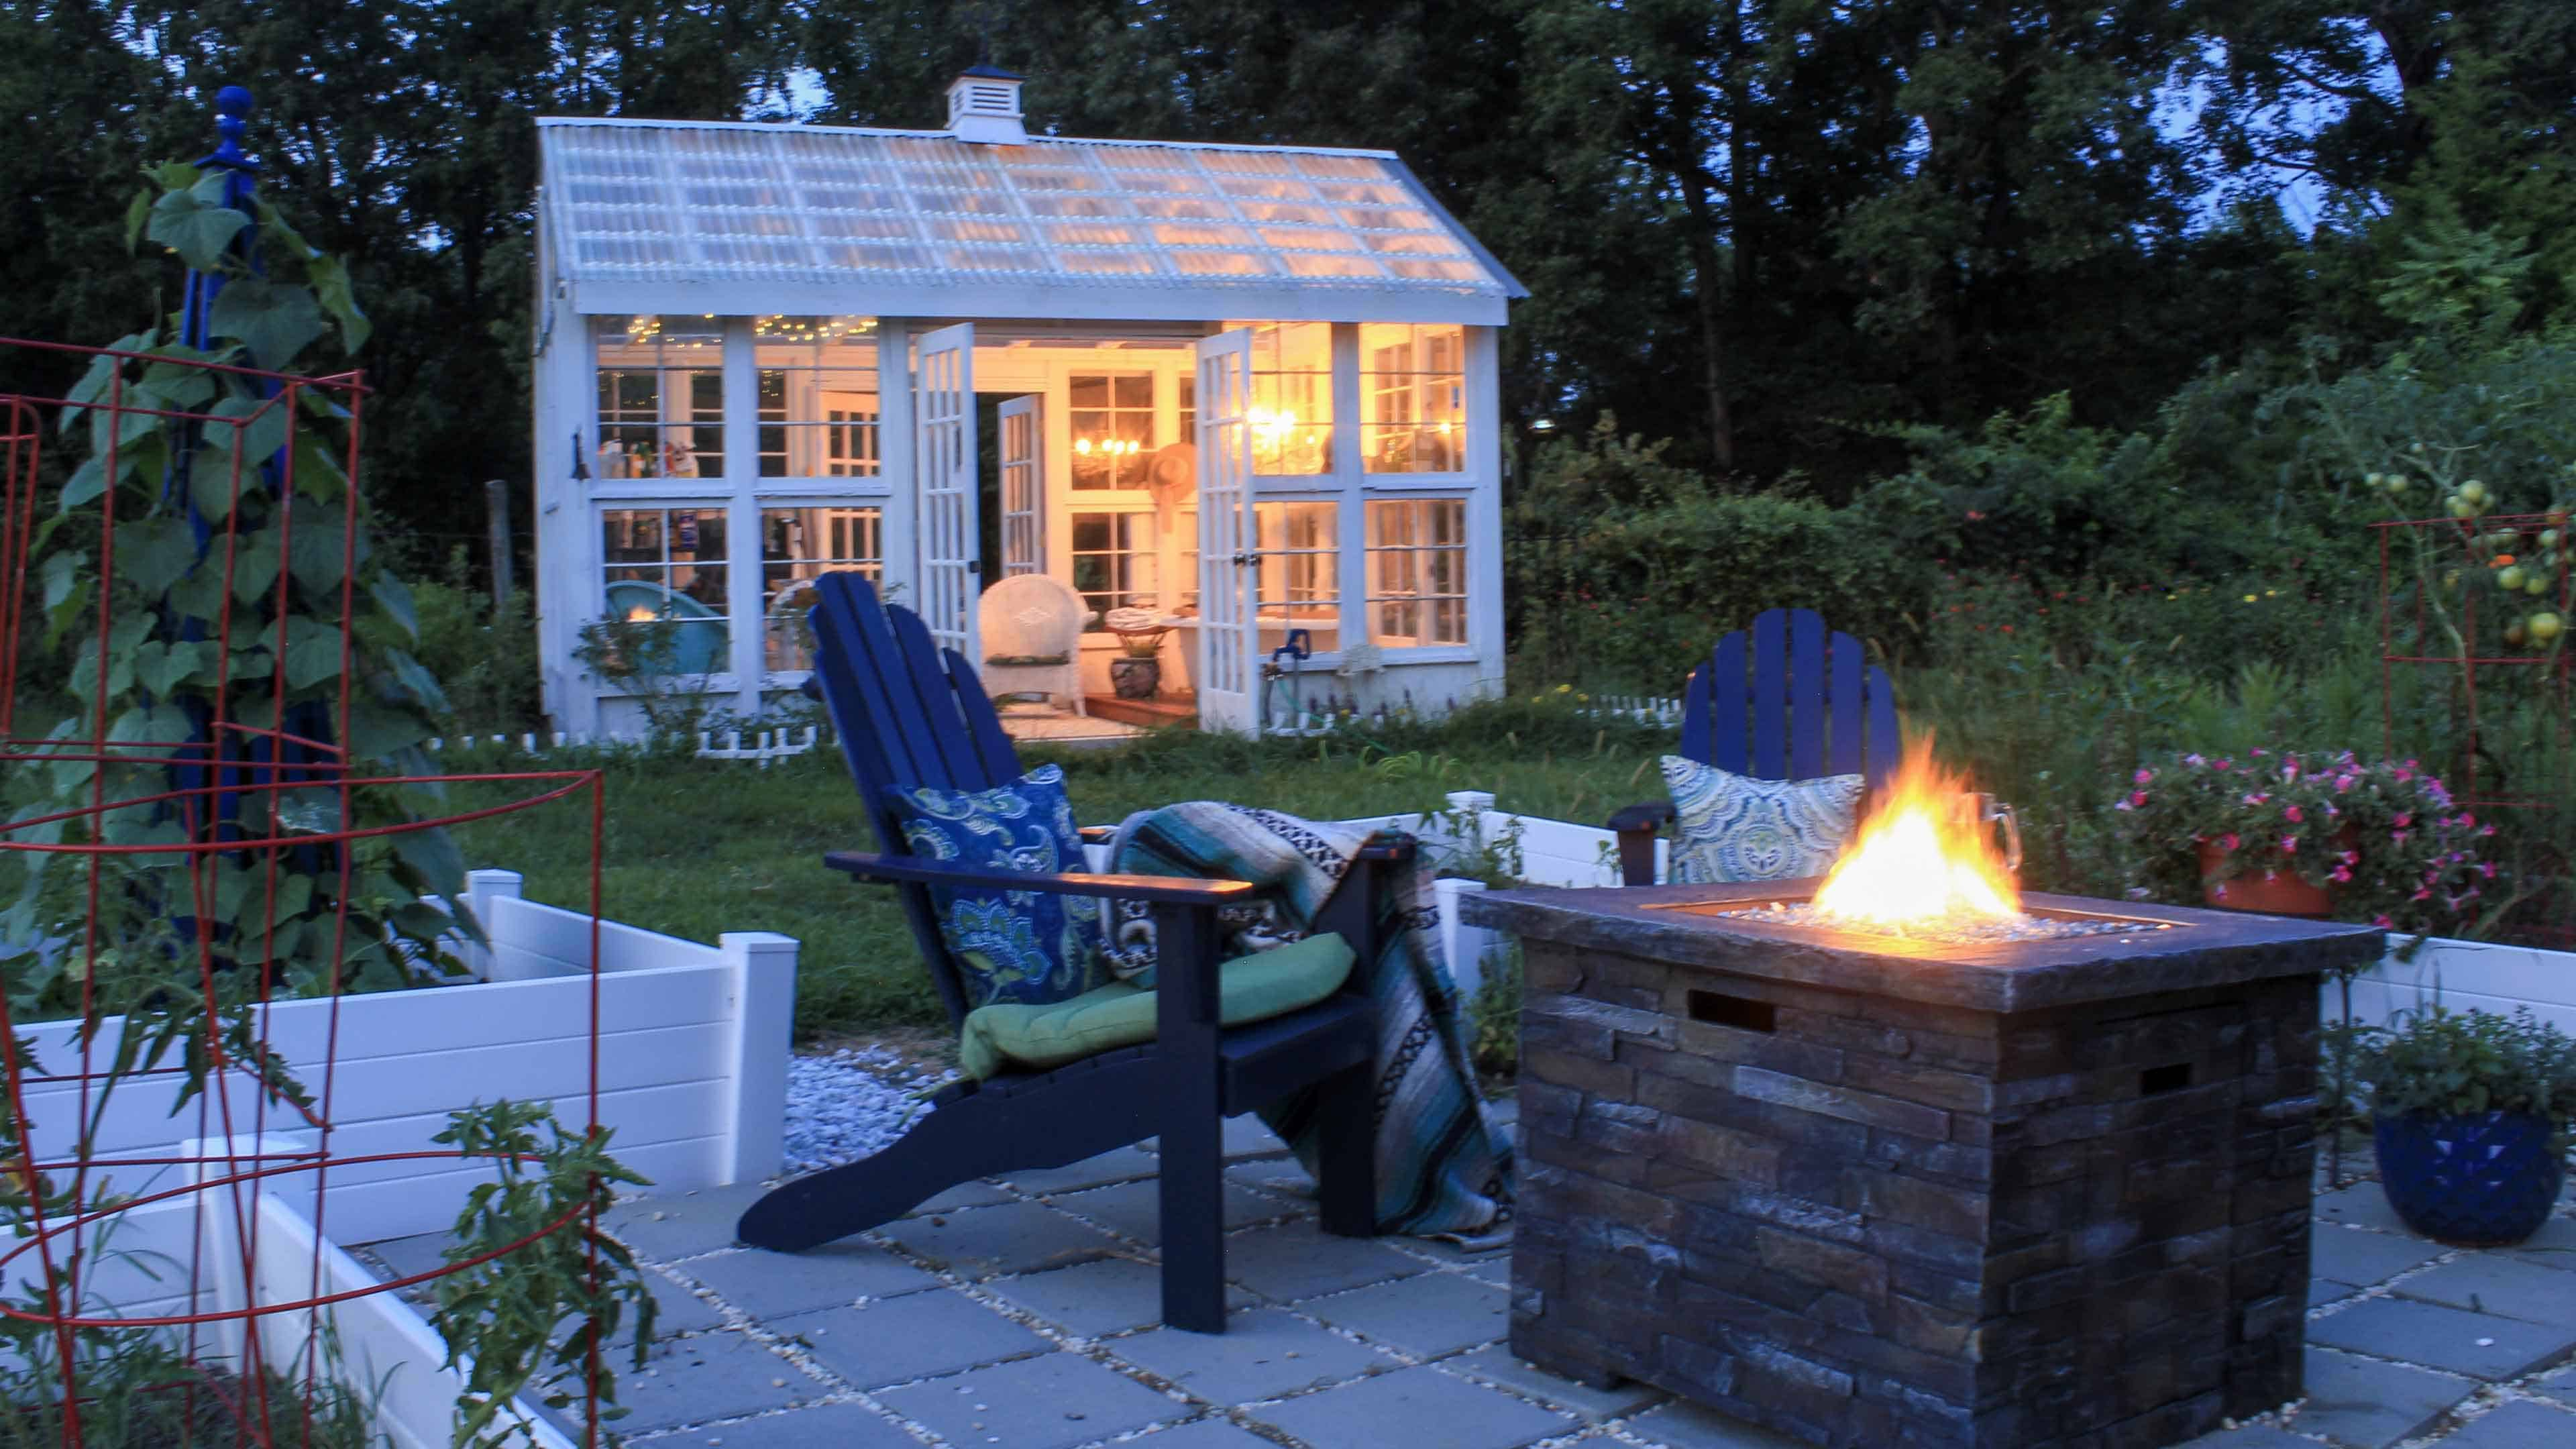 Extend your outdoor living into the fall with firepits, lighting and by adding seasonal plants